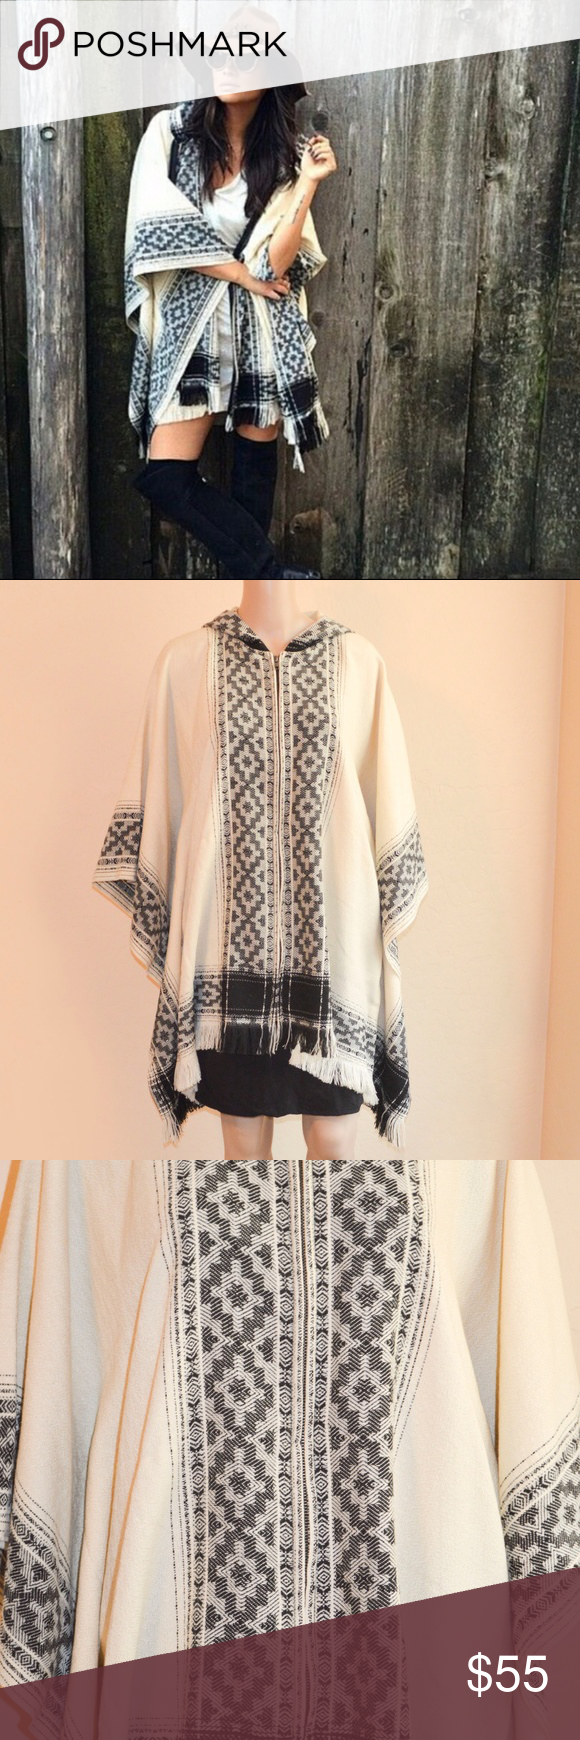 """NWT Ecote Neutral Hooded Blanked Poncho Jacket Ecote black & cream hooded boho Blanket Poncho Jacket from Urban Outfitters. Fringe hem. Zip up front. Perfect for fall!  Size: One Size  Measurements Laying Flat -  Underarm to Underarm: 31"""" Shoulder to Hem: 31""""  Material: 100% Acrylic  Condition: NWT - couple tiny pulled threads from trying on. Ecote Jackets & Coats"""